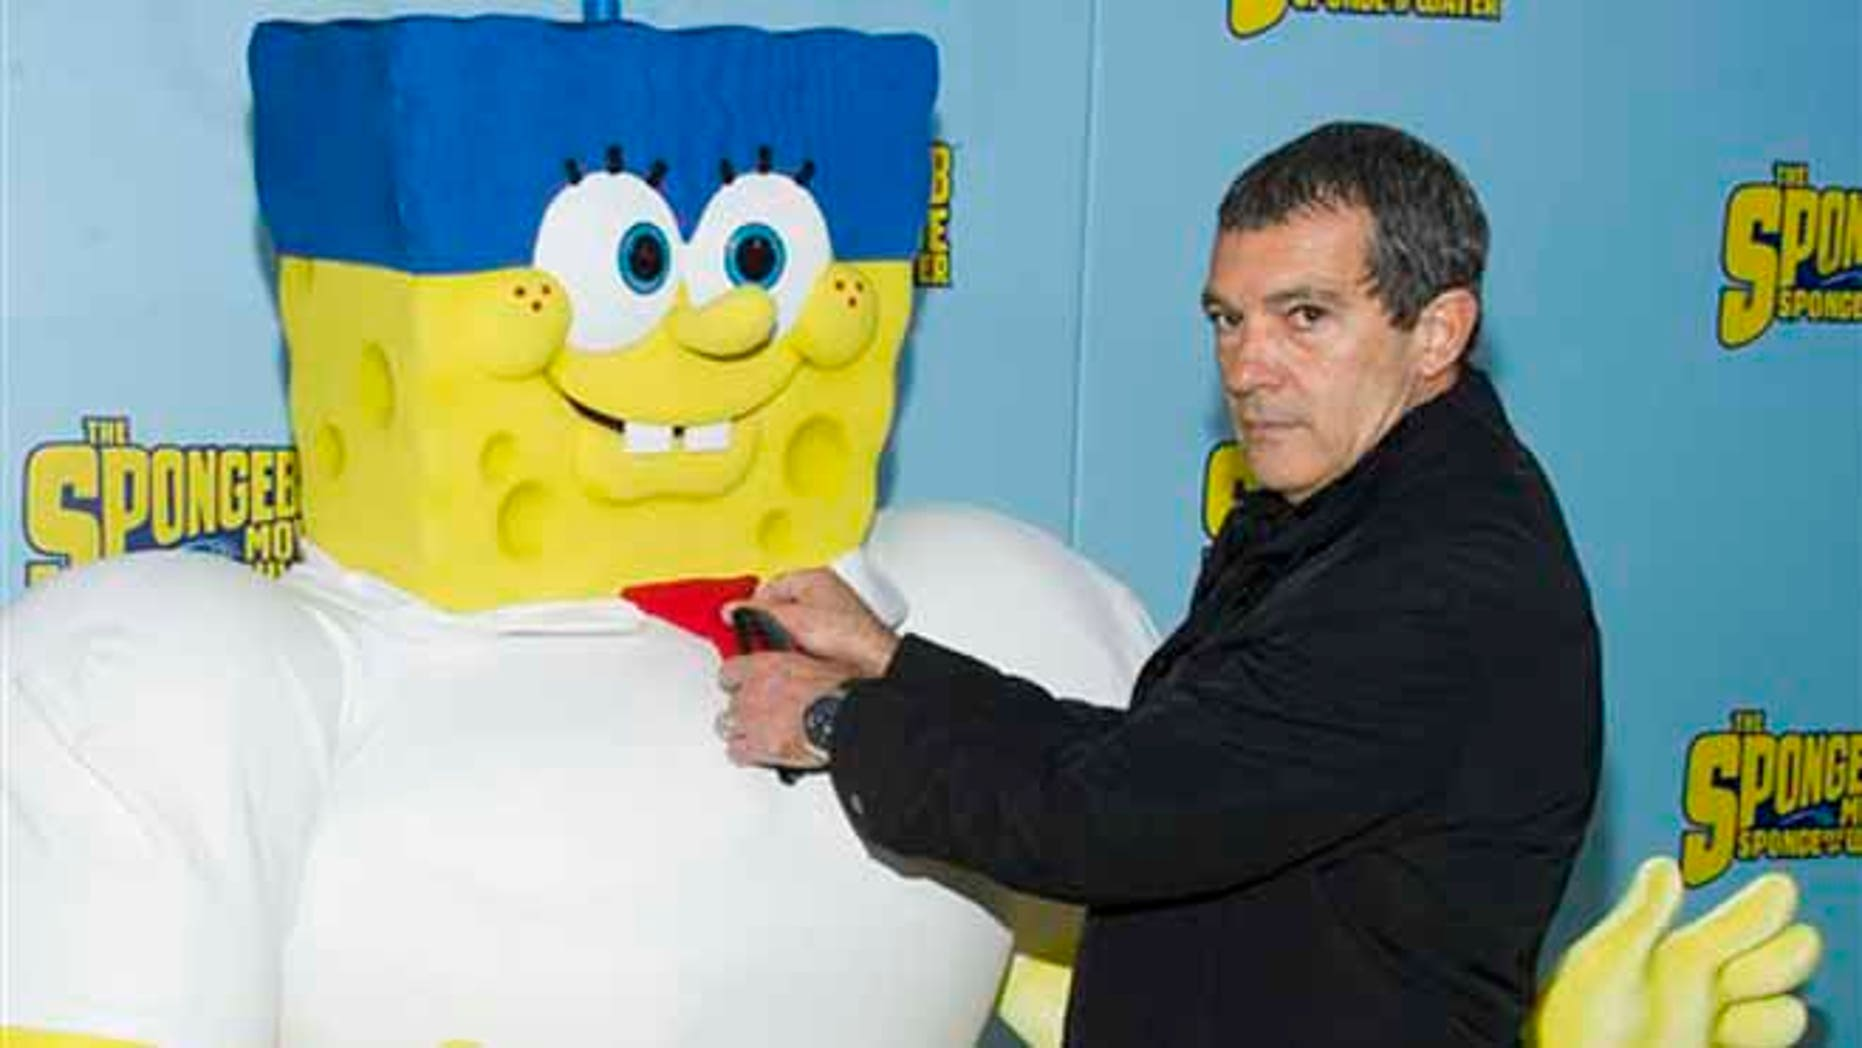 """Antonio Banderas attends the world premiere of """"The Spongebob Movie: Sponge Out of Water"""" at AMC Lincoln Square on Saturday, Jan. 31, 2015, in New York. (Photo by Charles Sykes/Invision/AP)"""